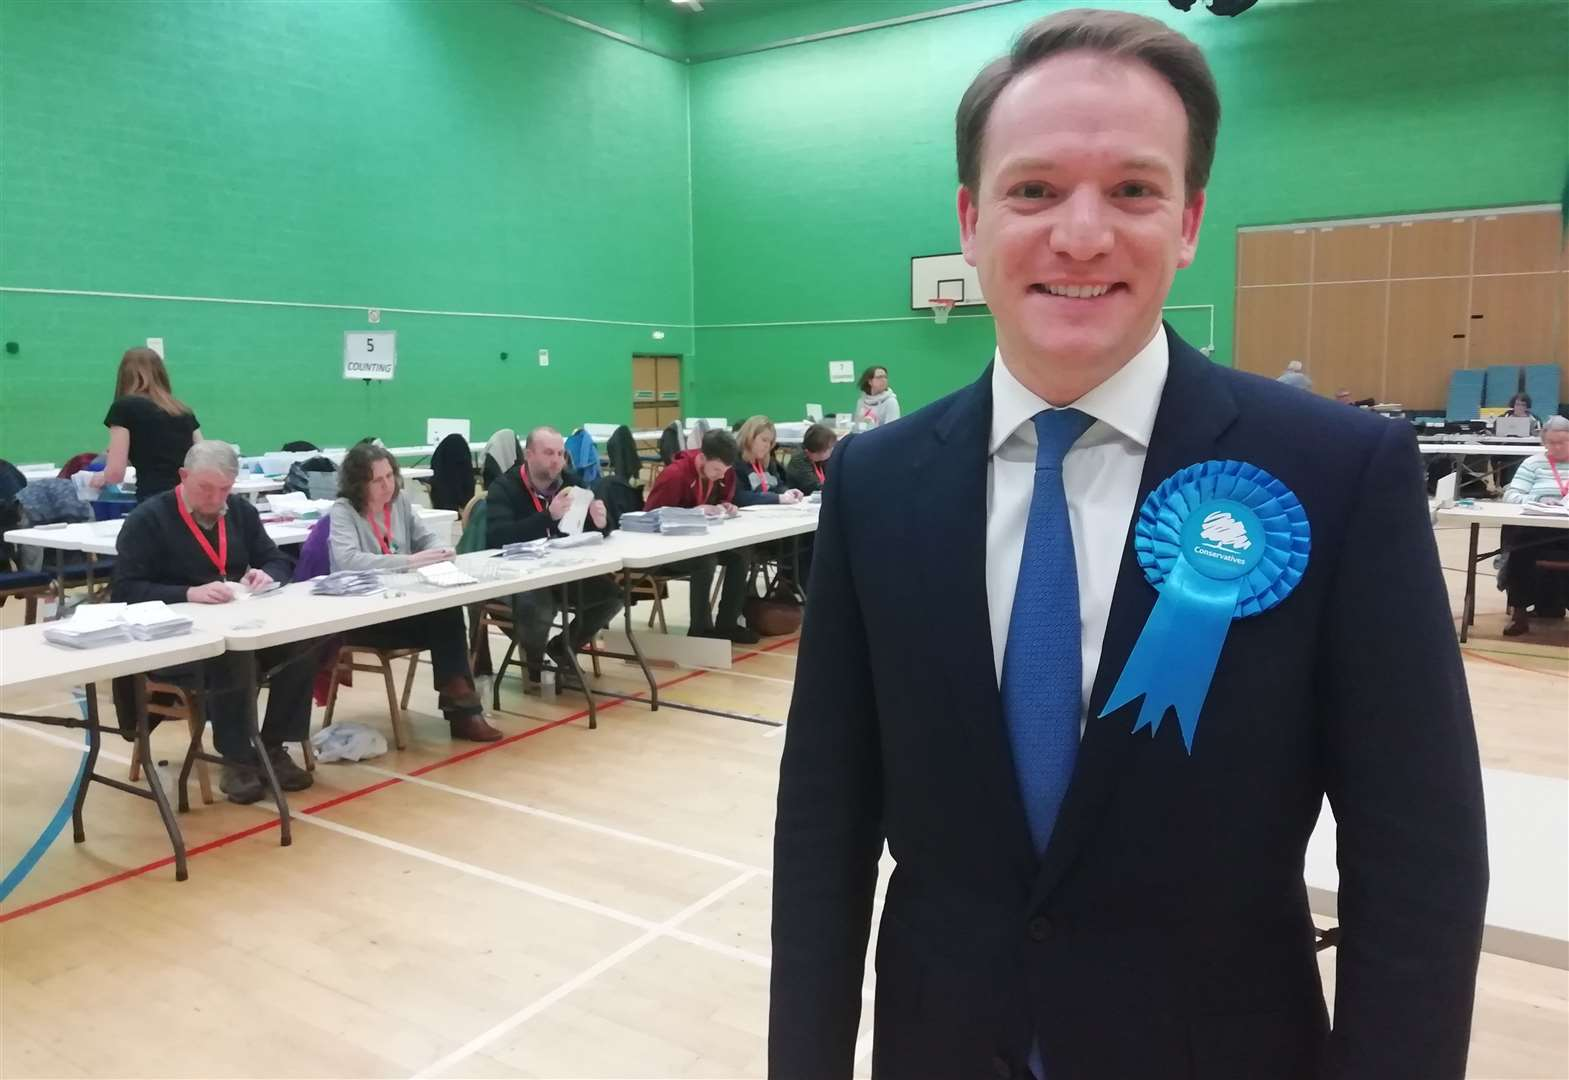 General Election 2019: New MP for Grantham and Stamford